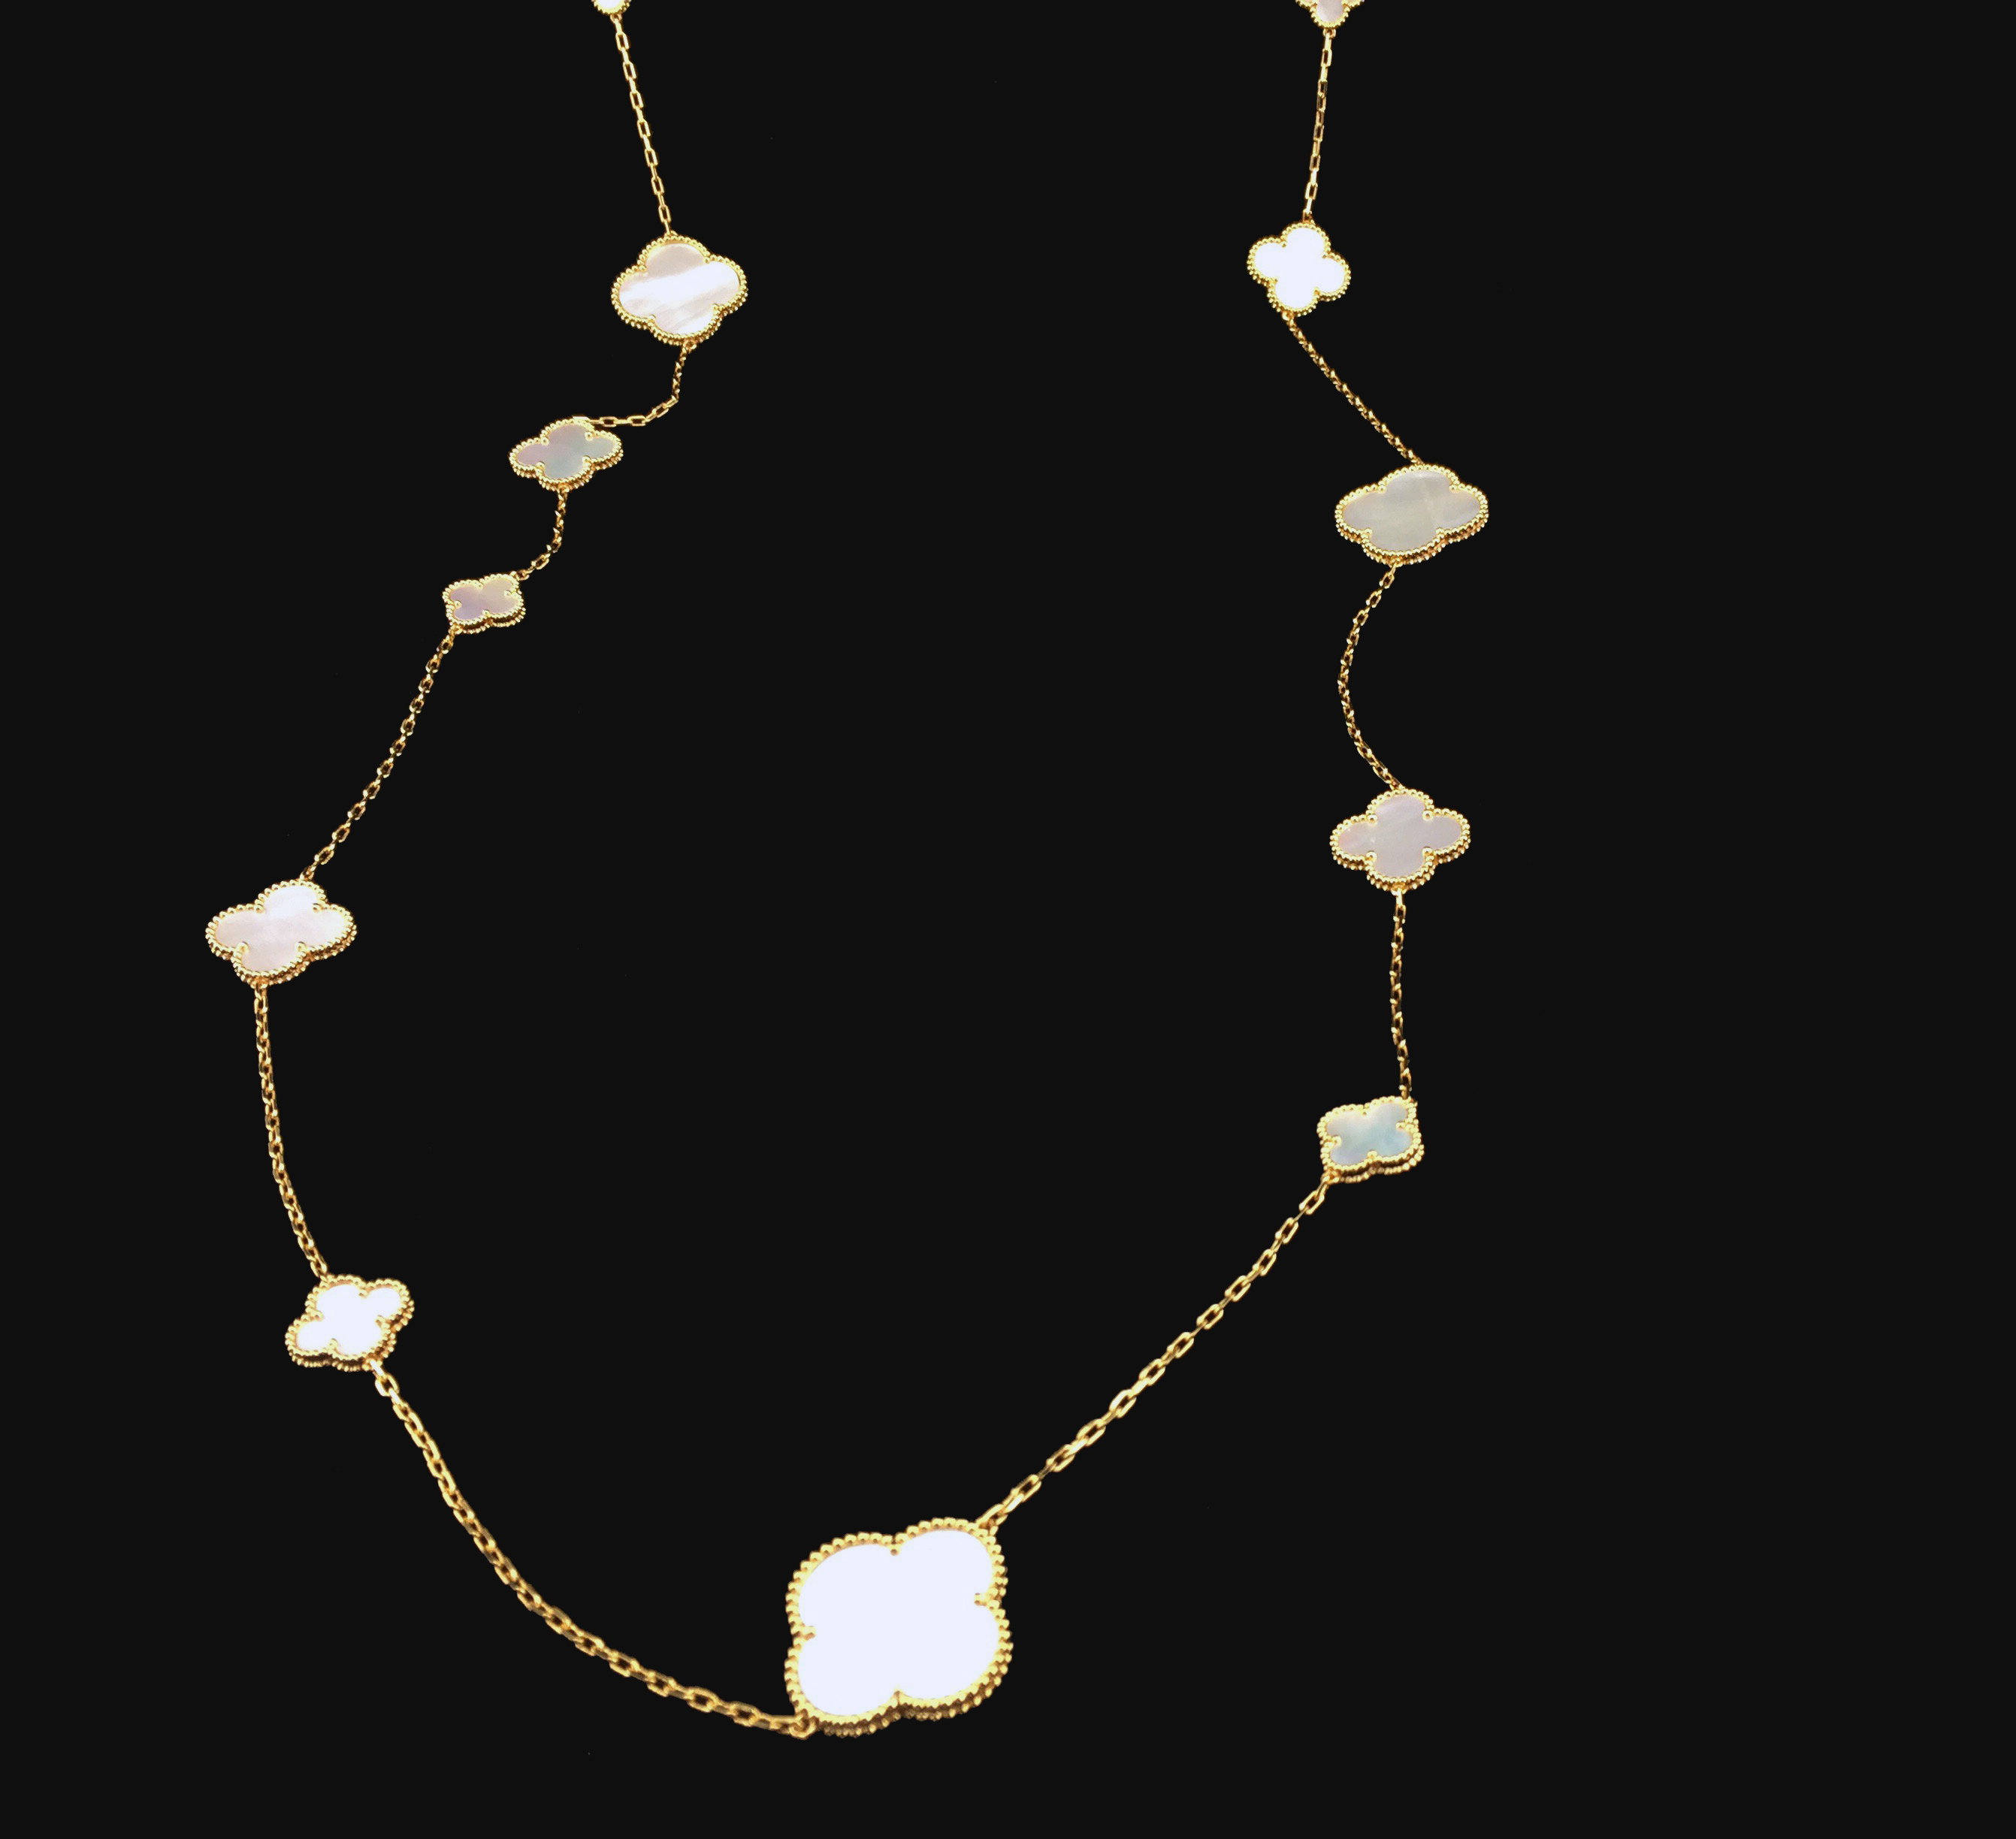 18K Gold Plated Clover Necklace 16 Motifs With Mother Of